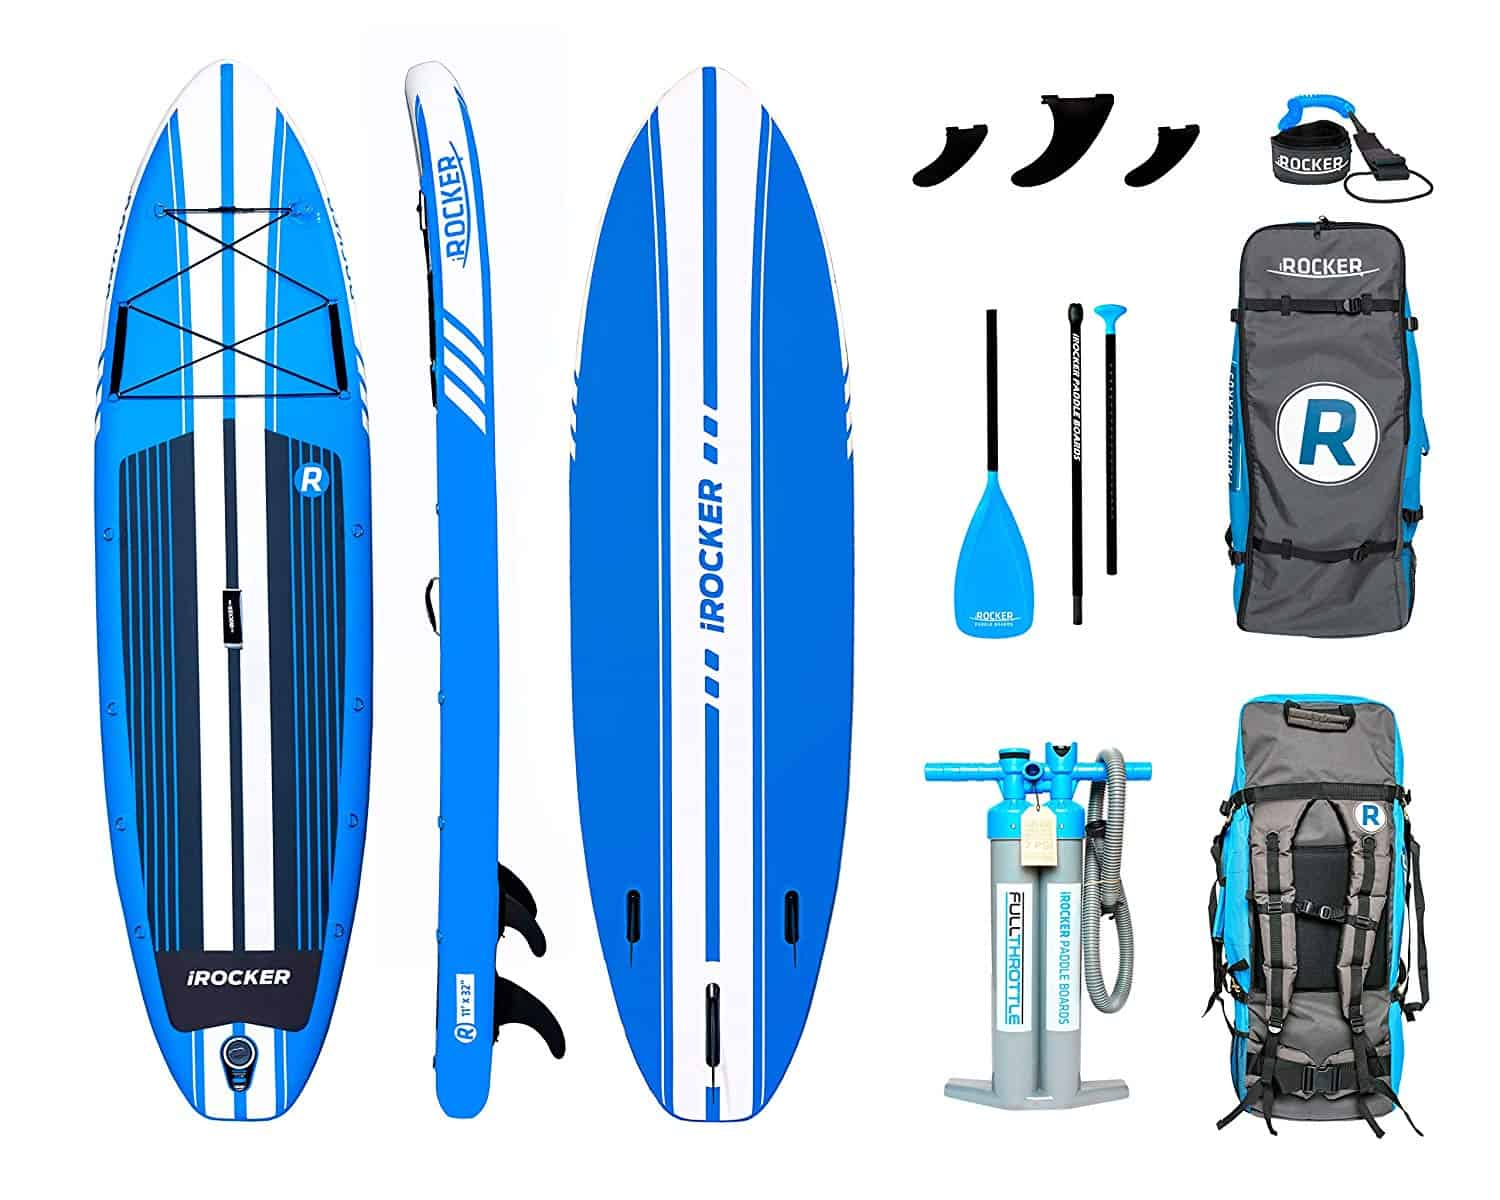 Irocker All-Around Inflatable SUP